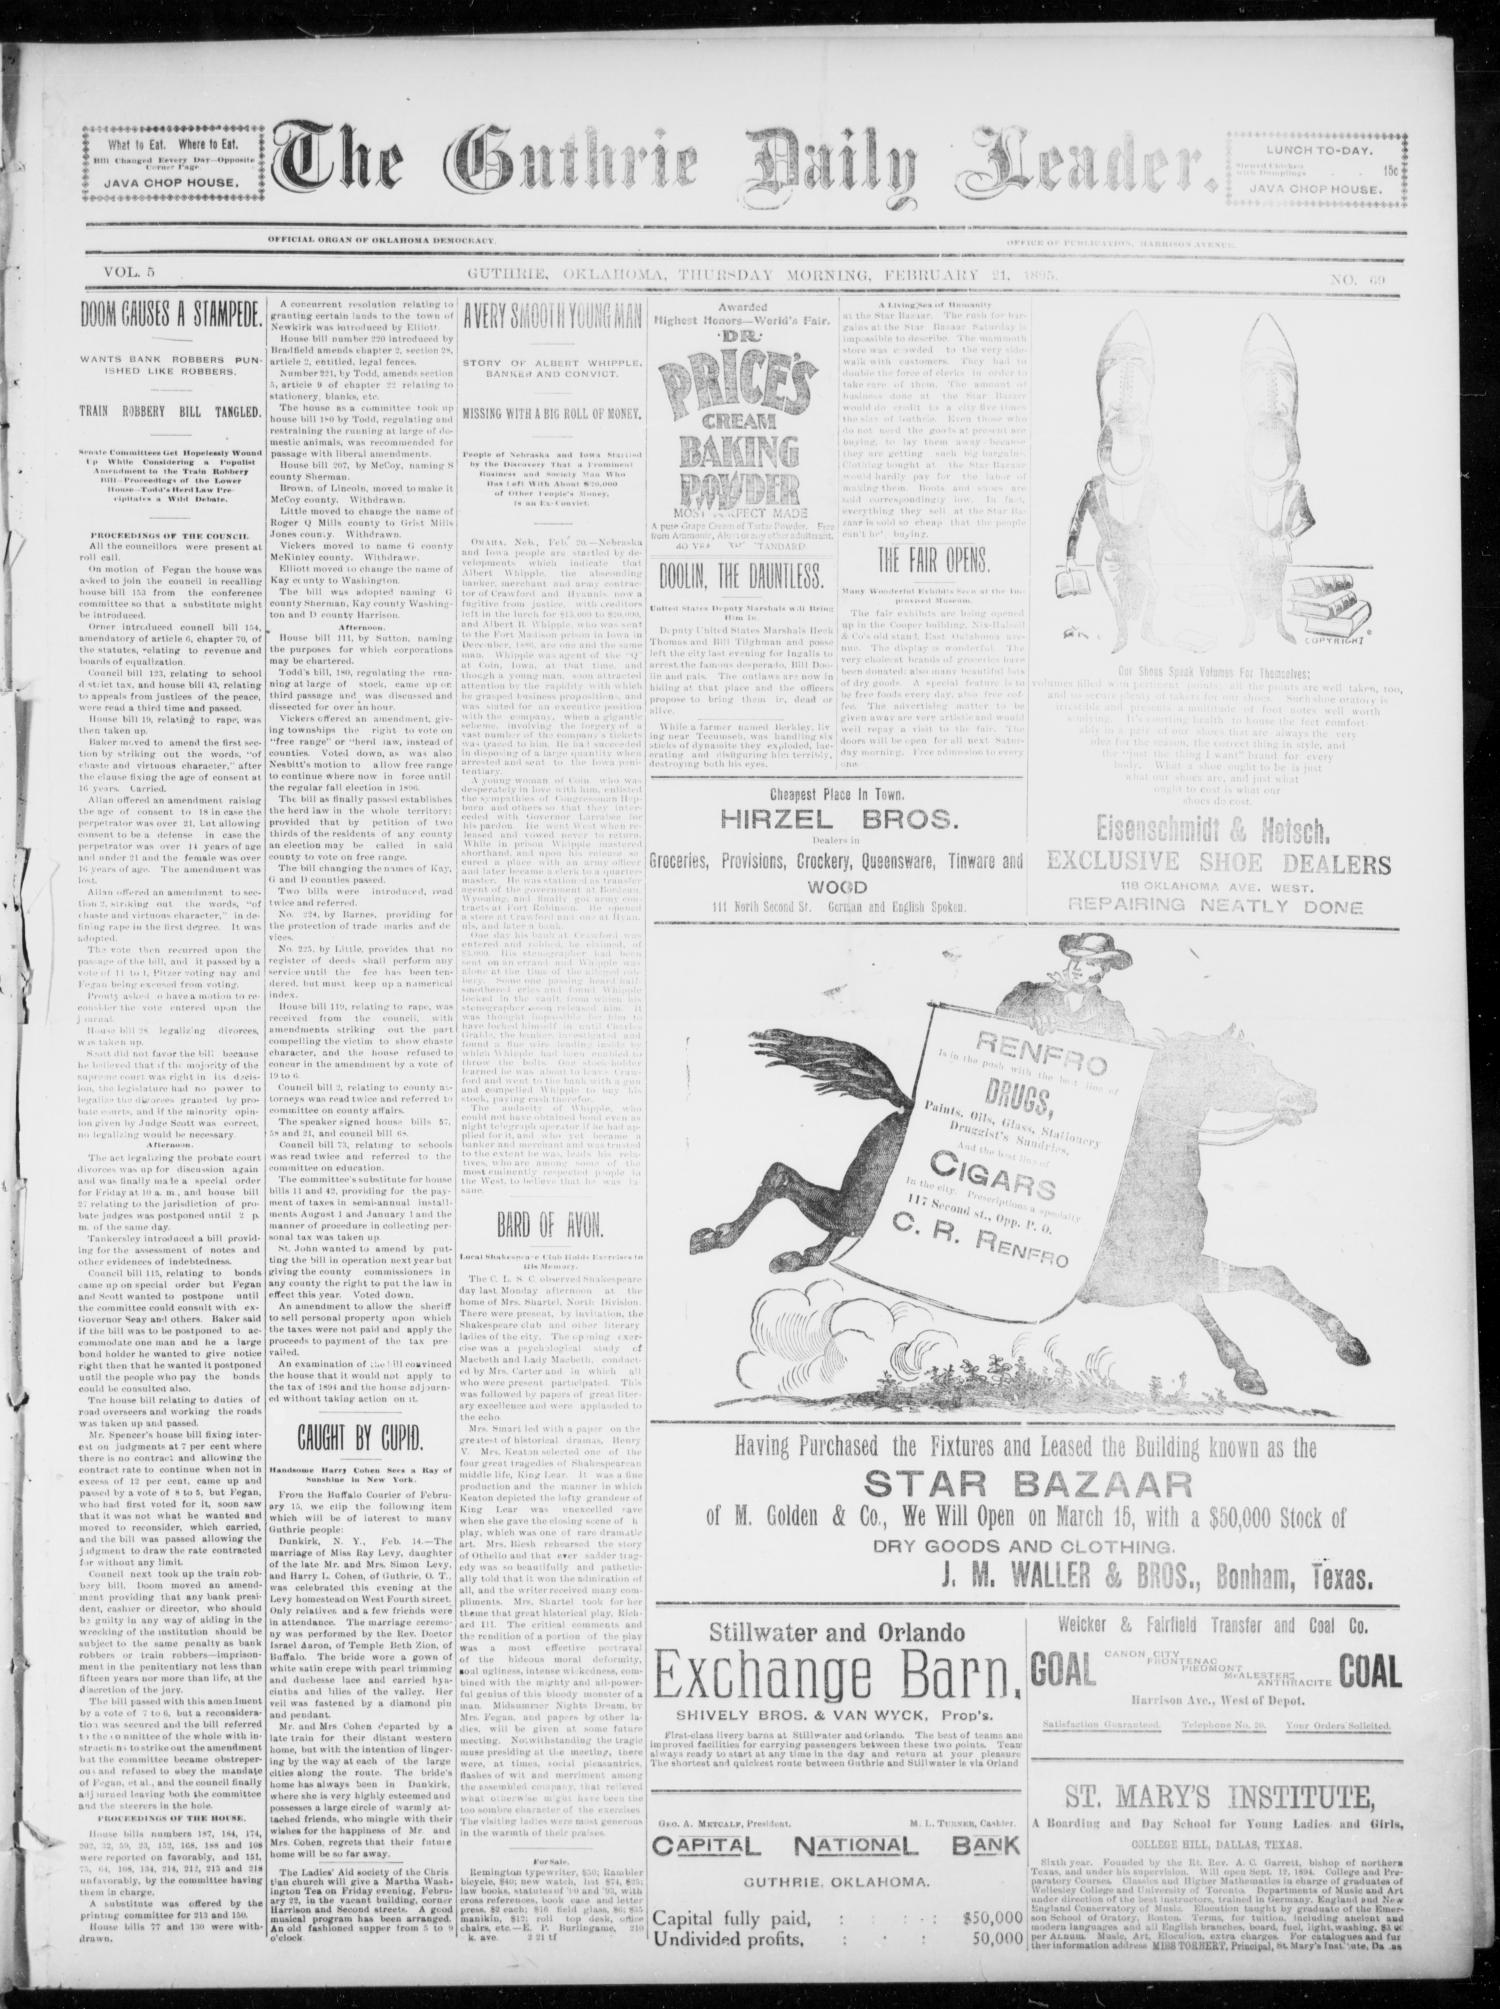 The Guthrie Daily Leader. (Guthrie, Okla.), Vol. 5, No. 69, Ed. 1, Thursday, February 21, 1895                                                                                                      [Sequence #]: 1 of 4